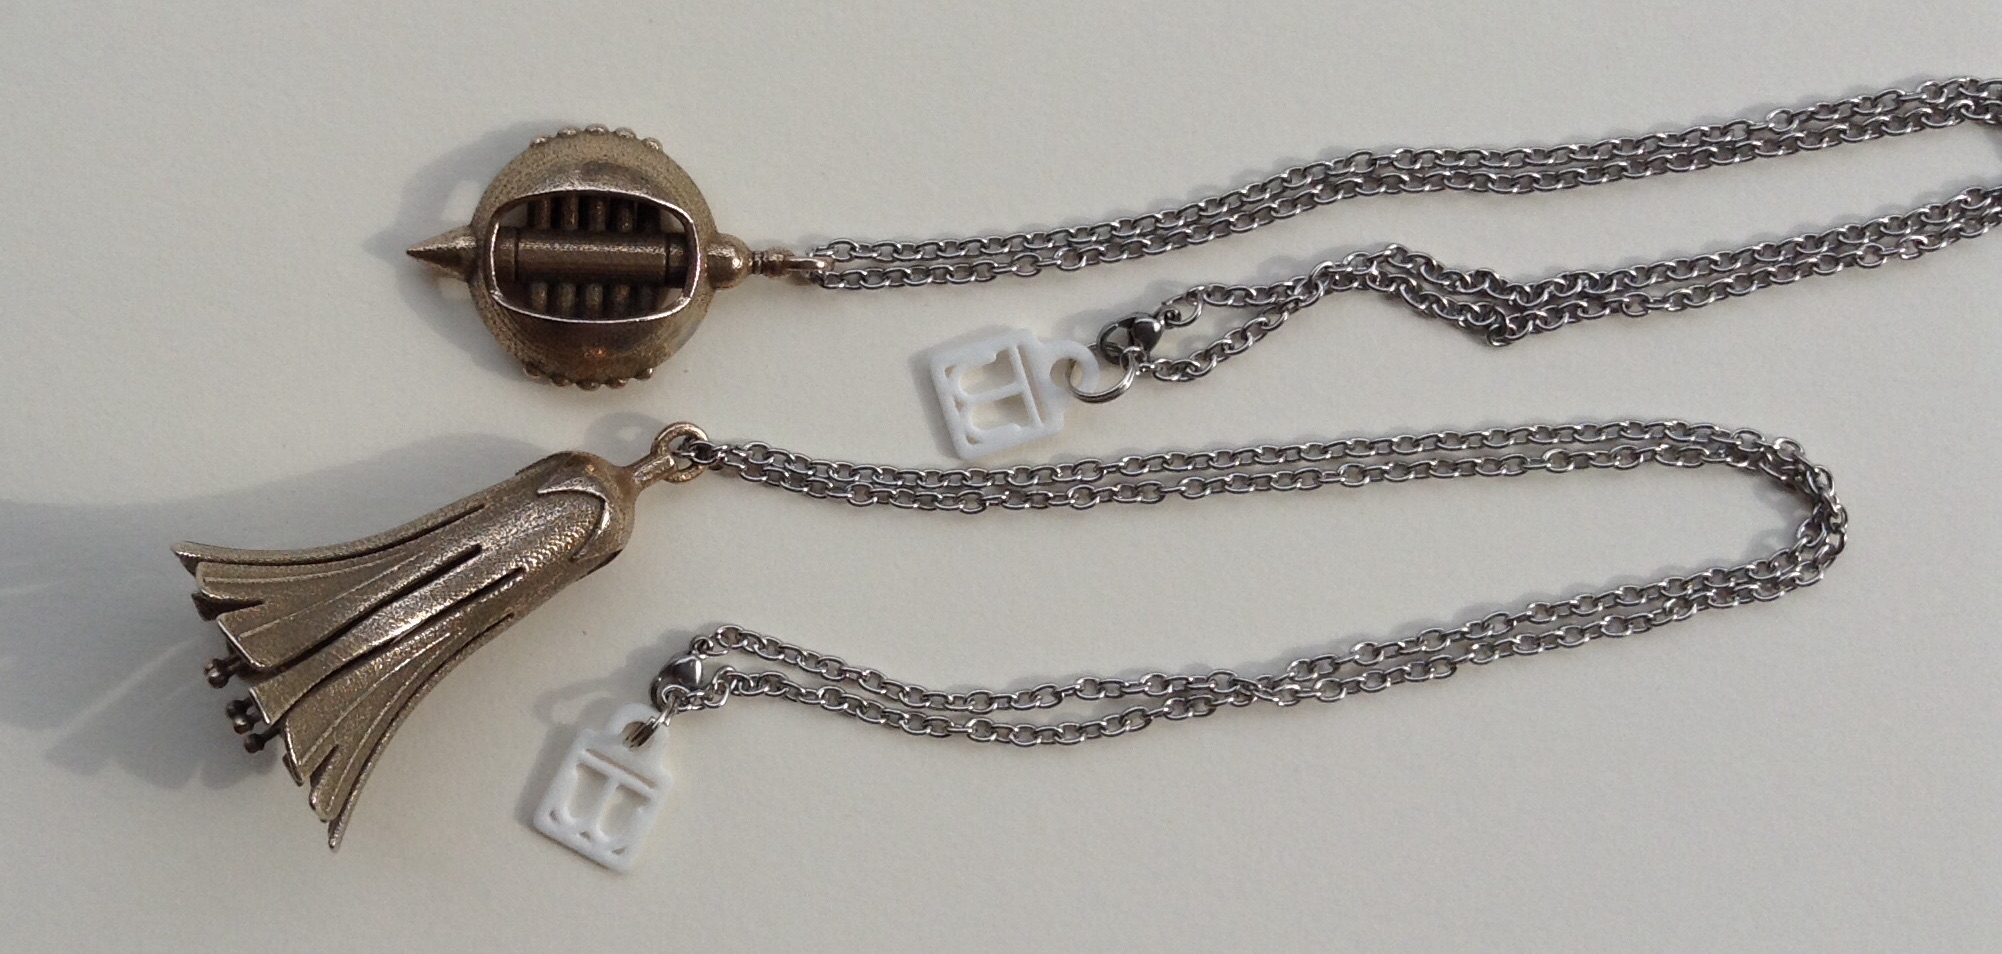 2 necklaces with 3d printed pendants by tomwilcox on